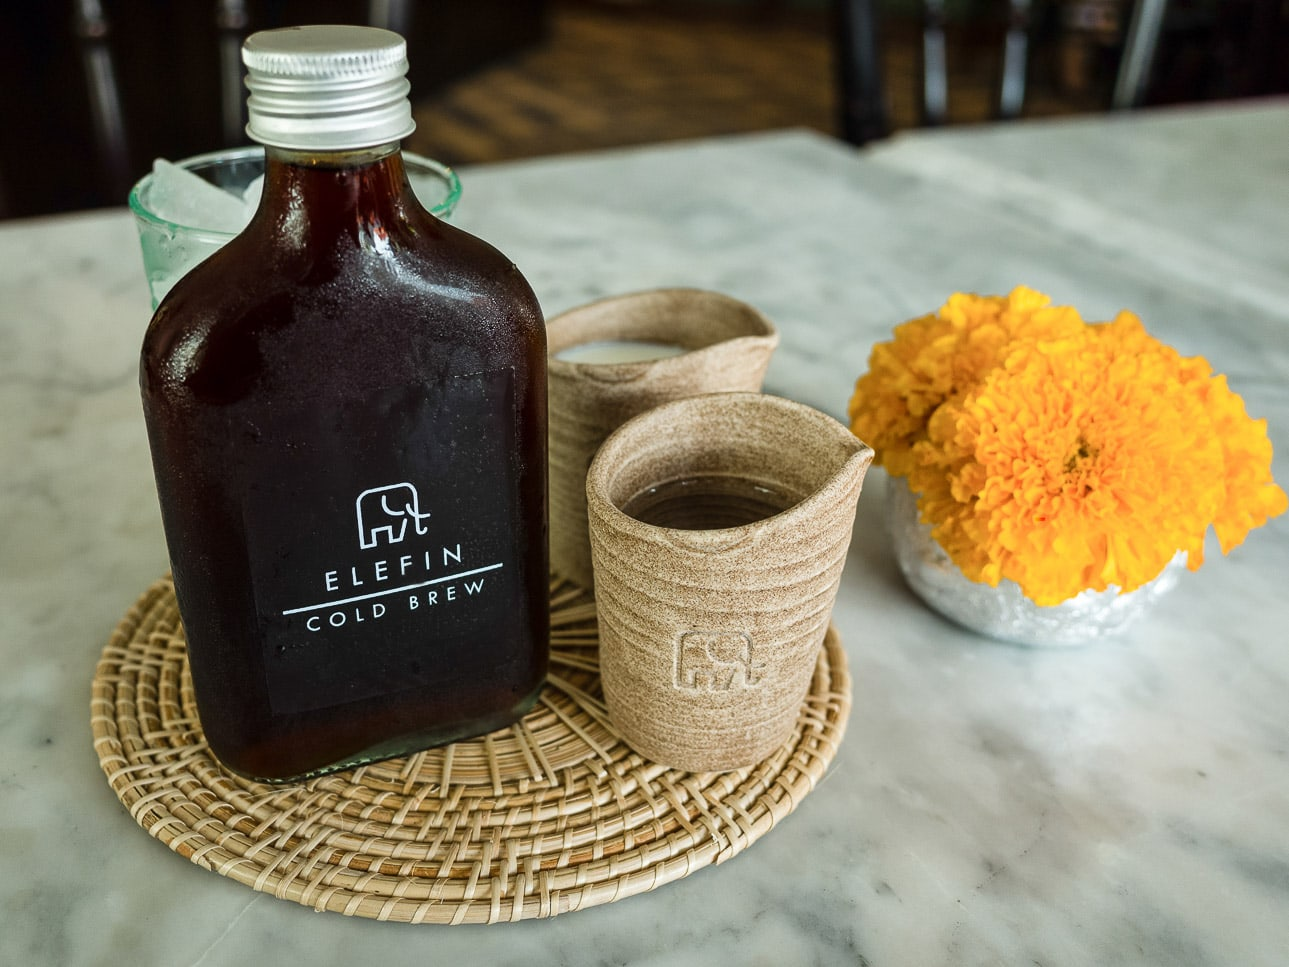 Cold brew coffee at Elefin coffeeshop in Bangkok, Thailand